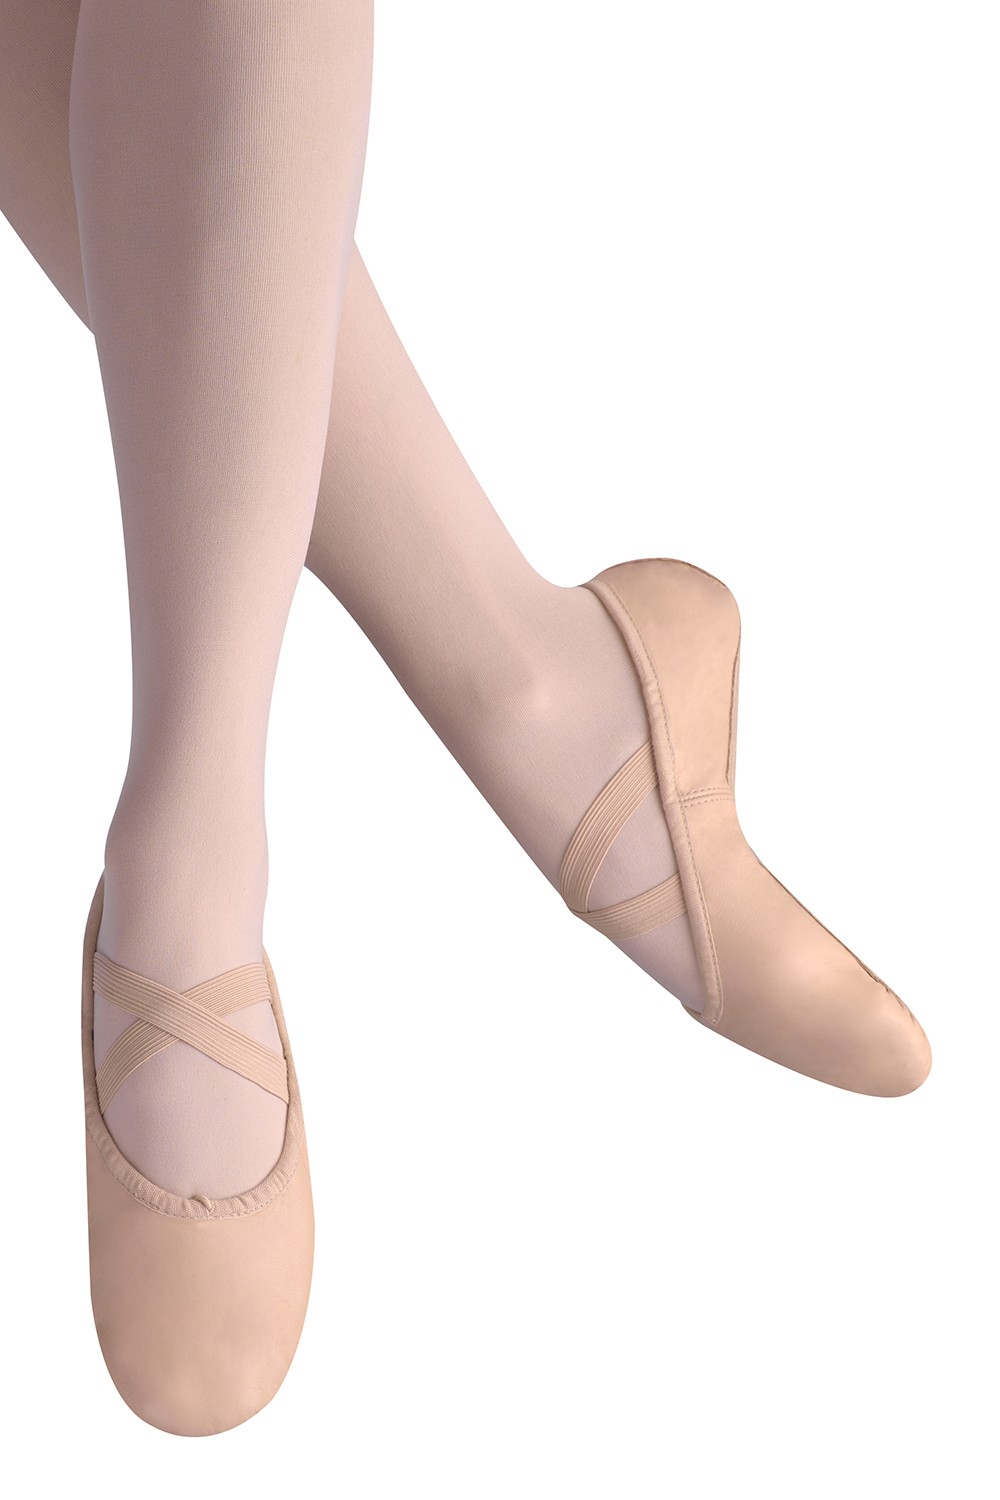 Ensemble Girl's Ballet Shoes